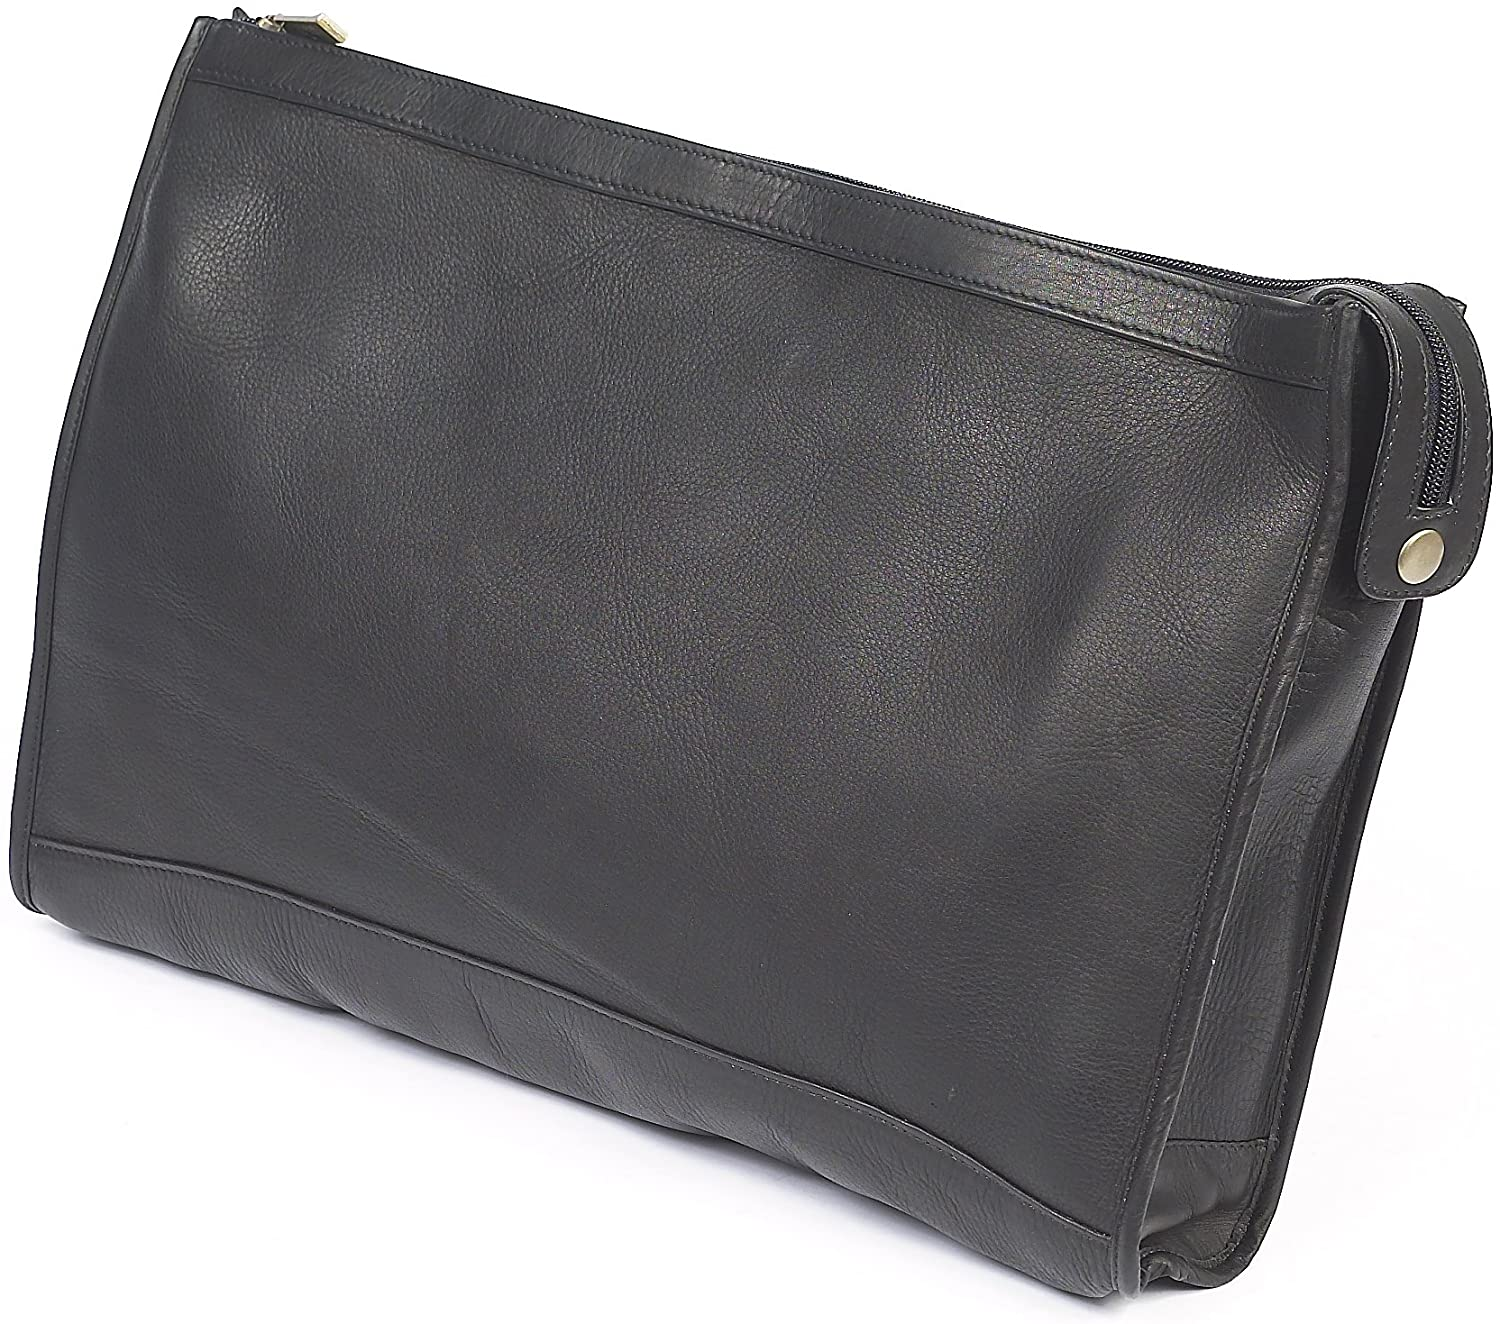 Claire Chase Zippered Folio Pouch, Black, One Size  Claire Chase  Clothing